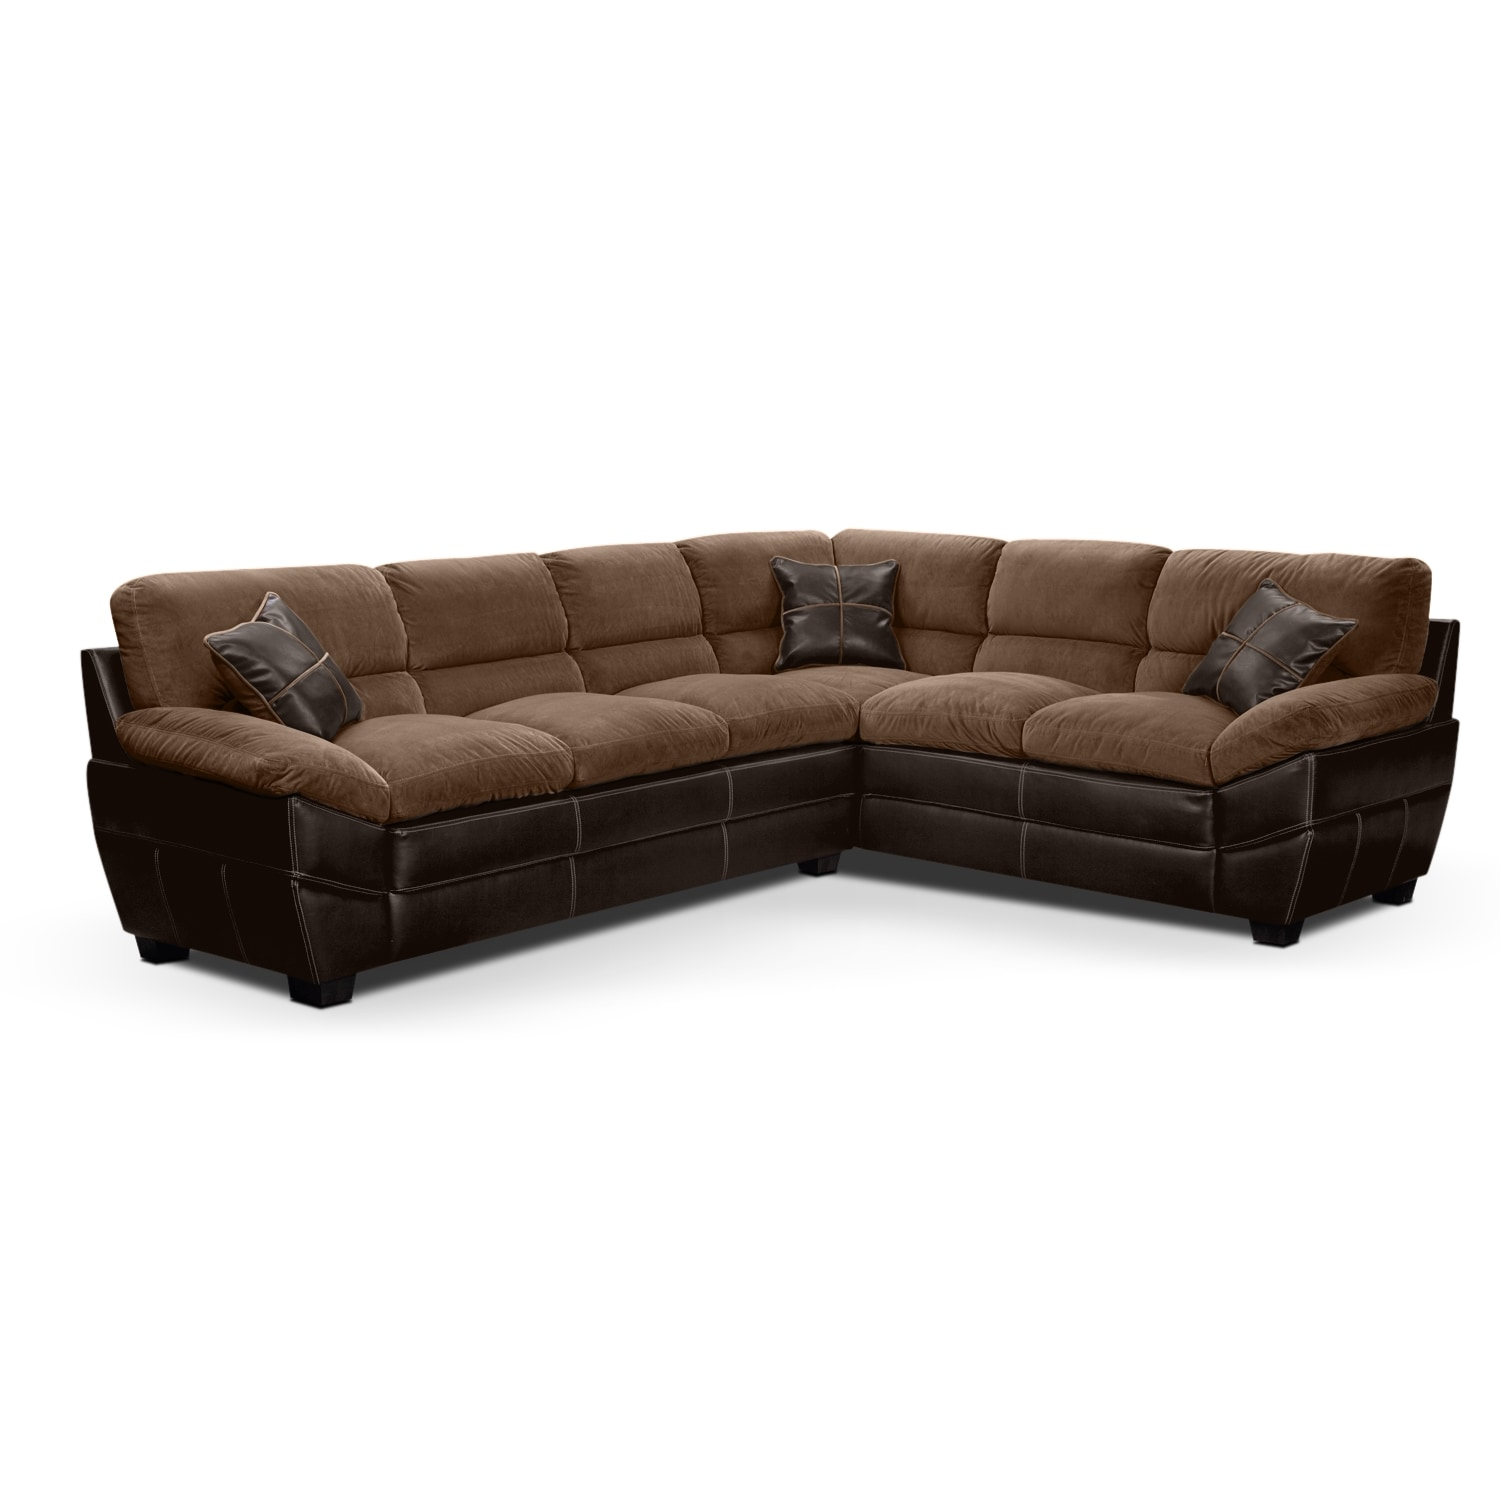 Sectional sofas living room seating american signature for Signature furniture